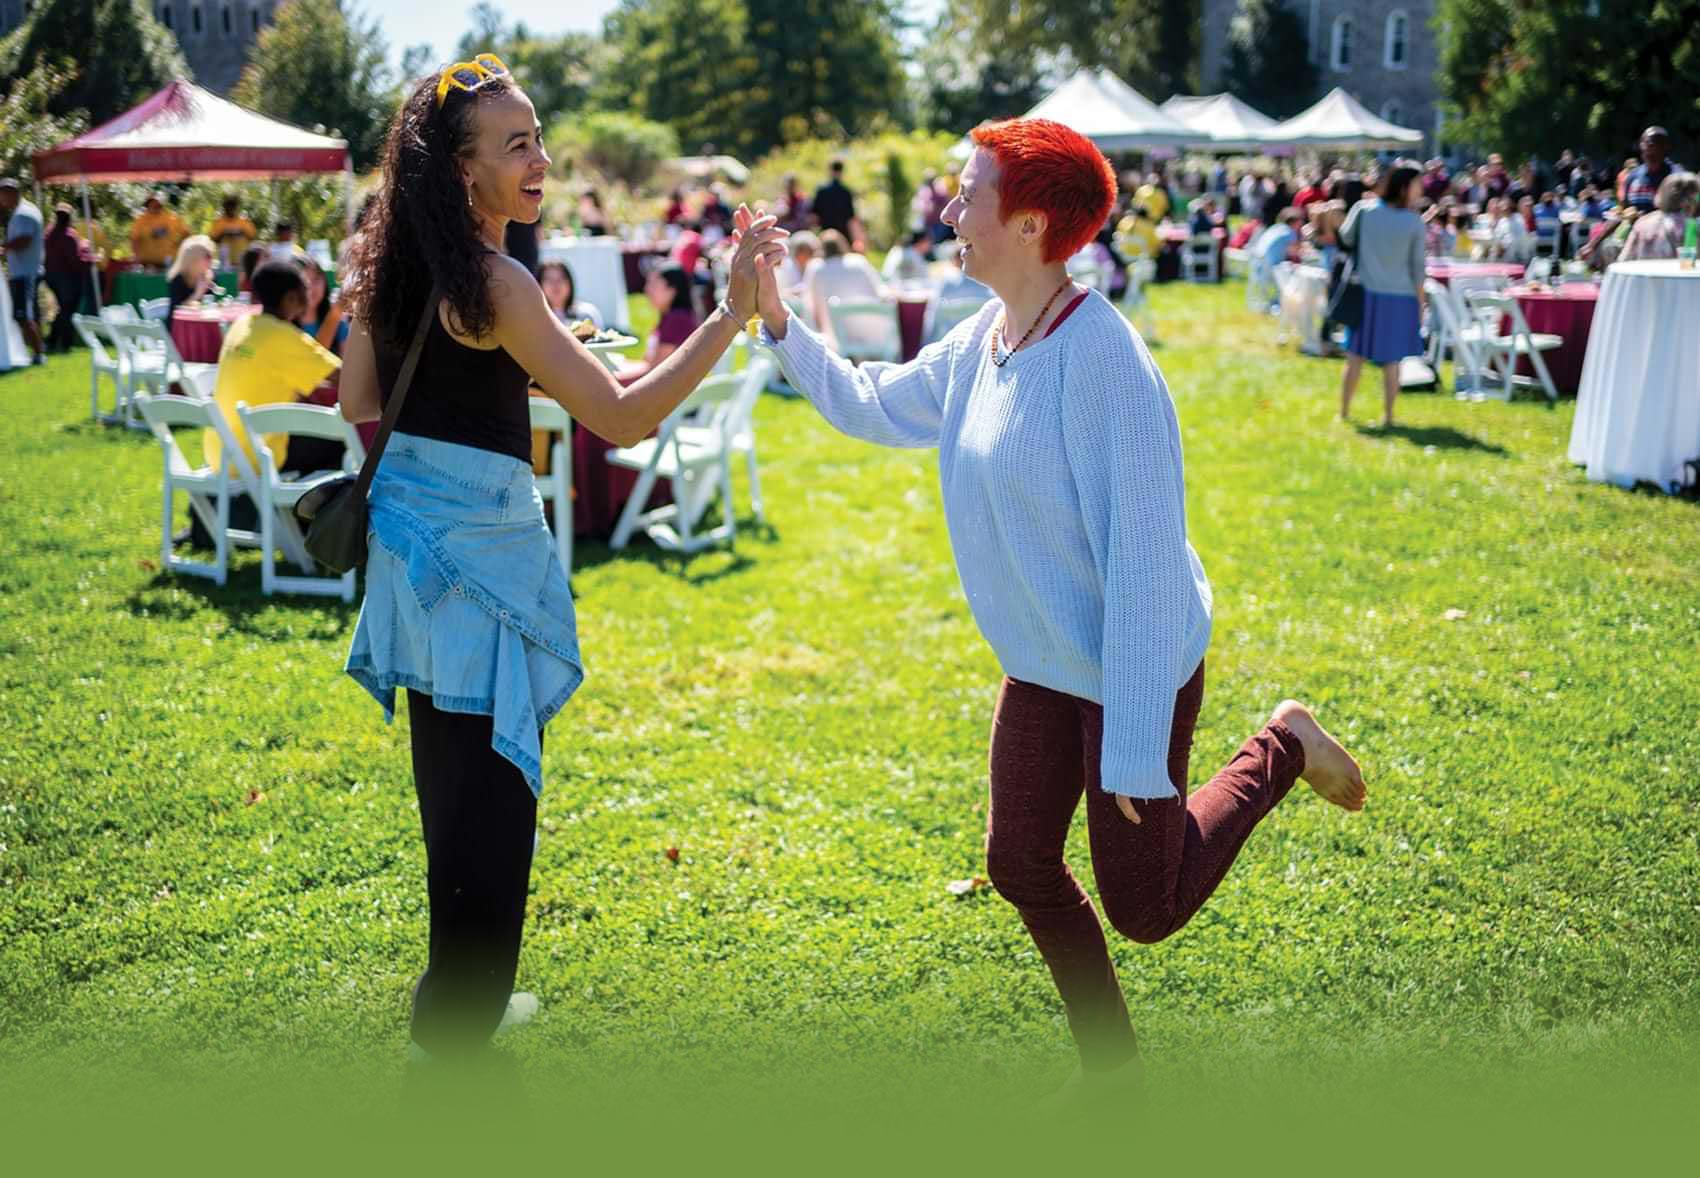 students say hi with a high-five at an outdoor event